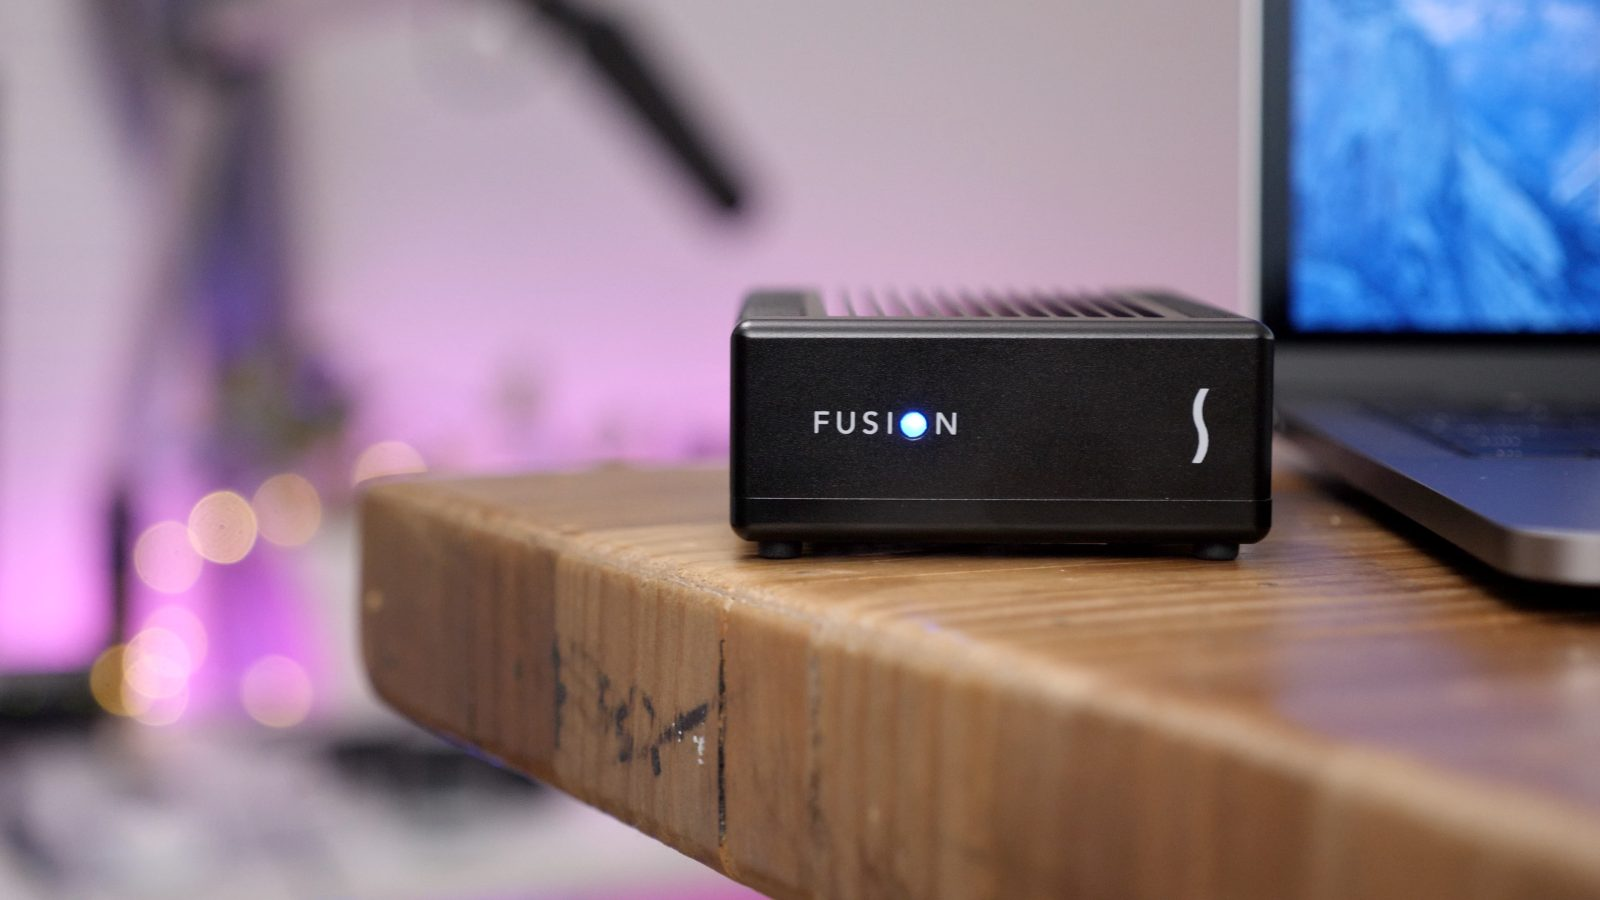 Review: Sonnet's Fusion Thunderbolt 3 PCIe Flash Drive is an